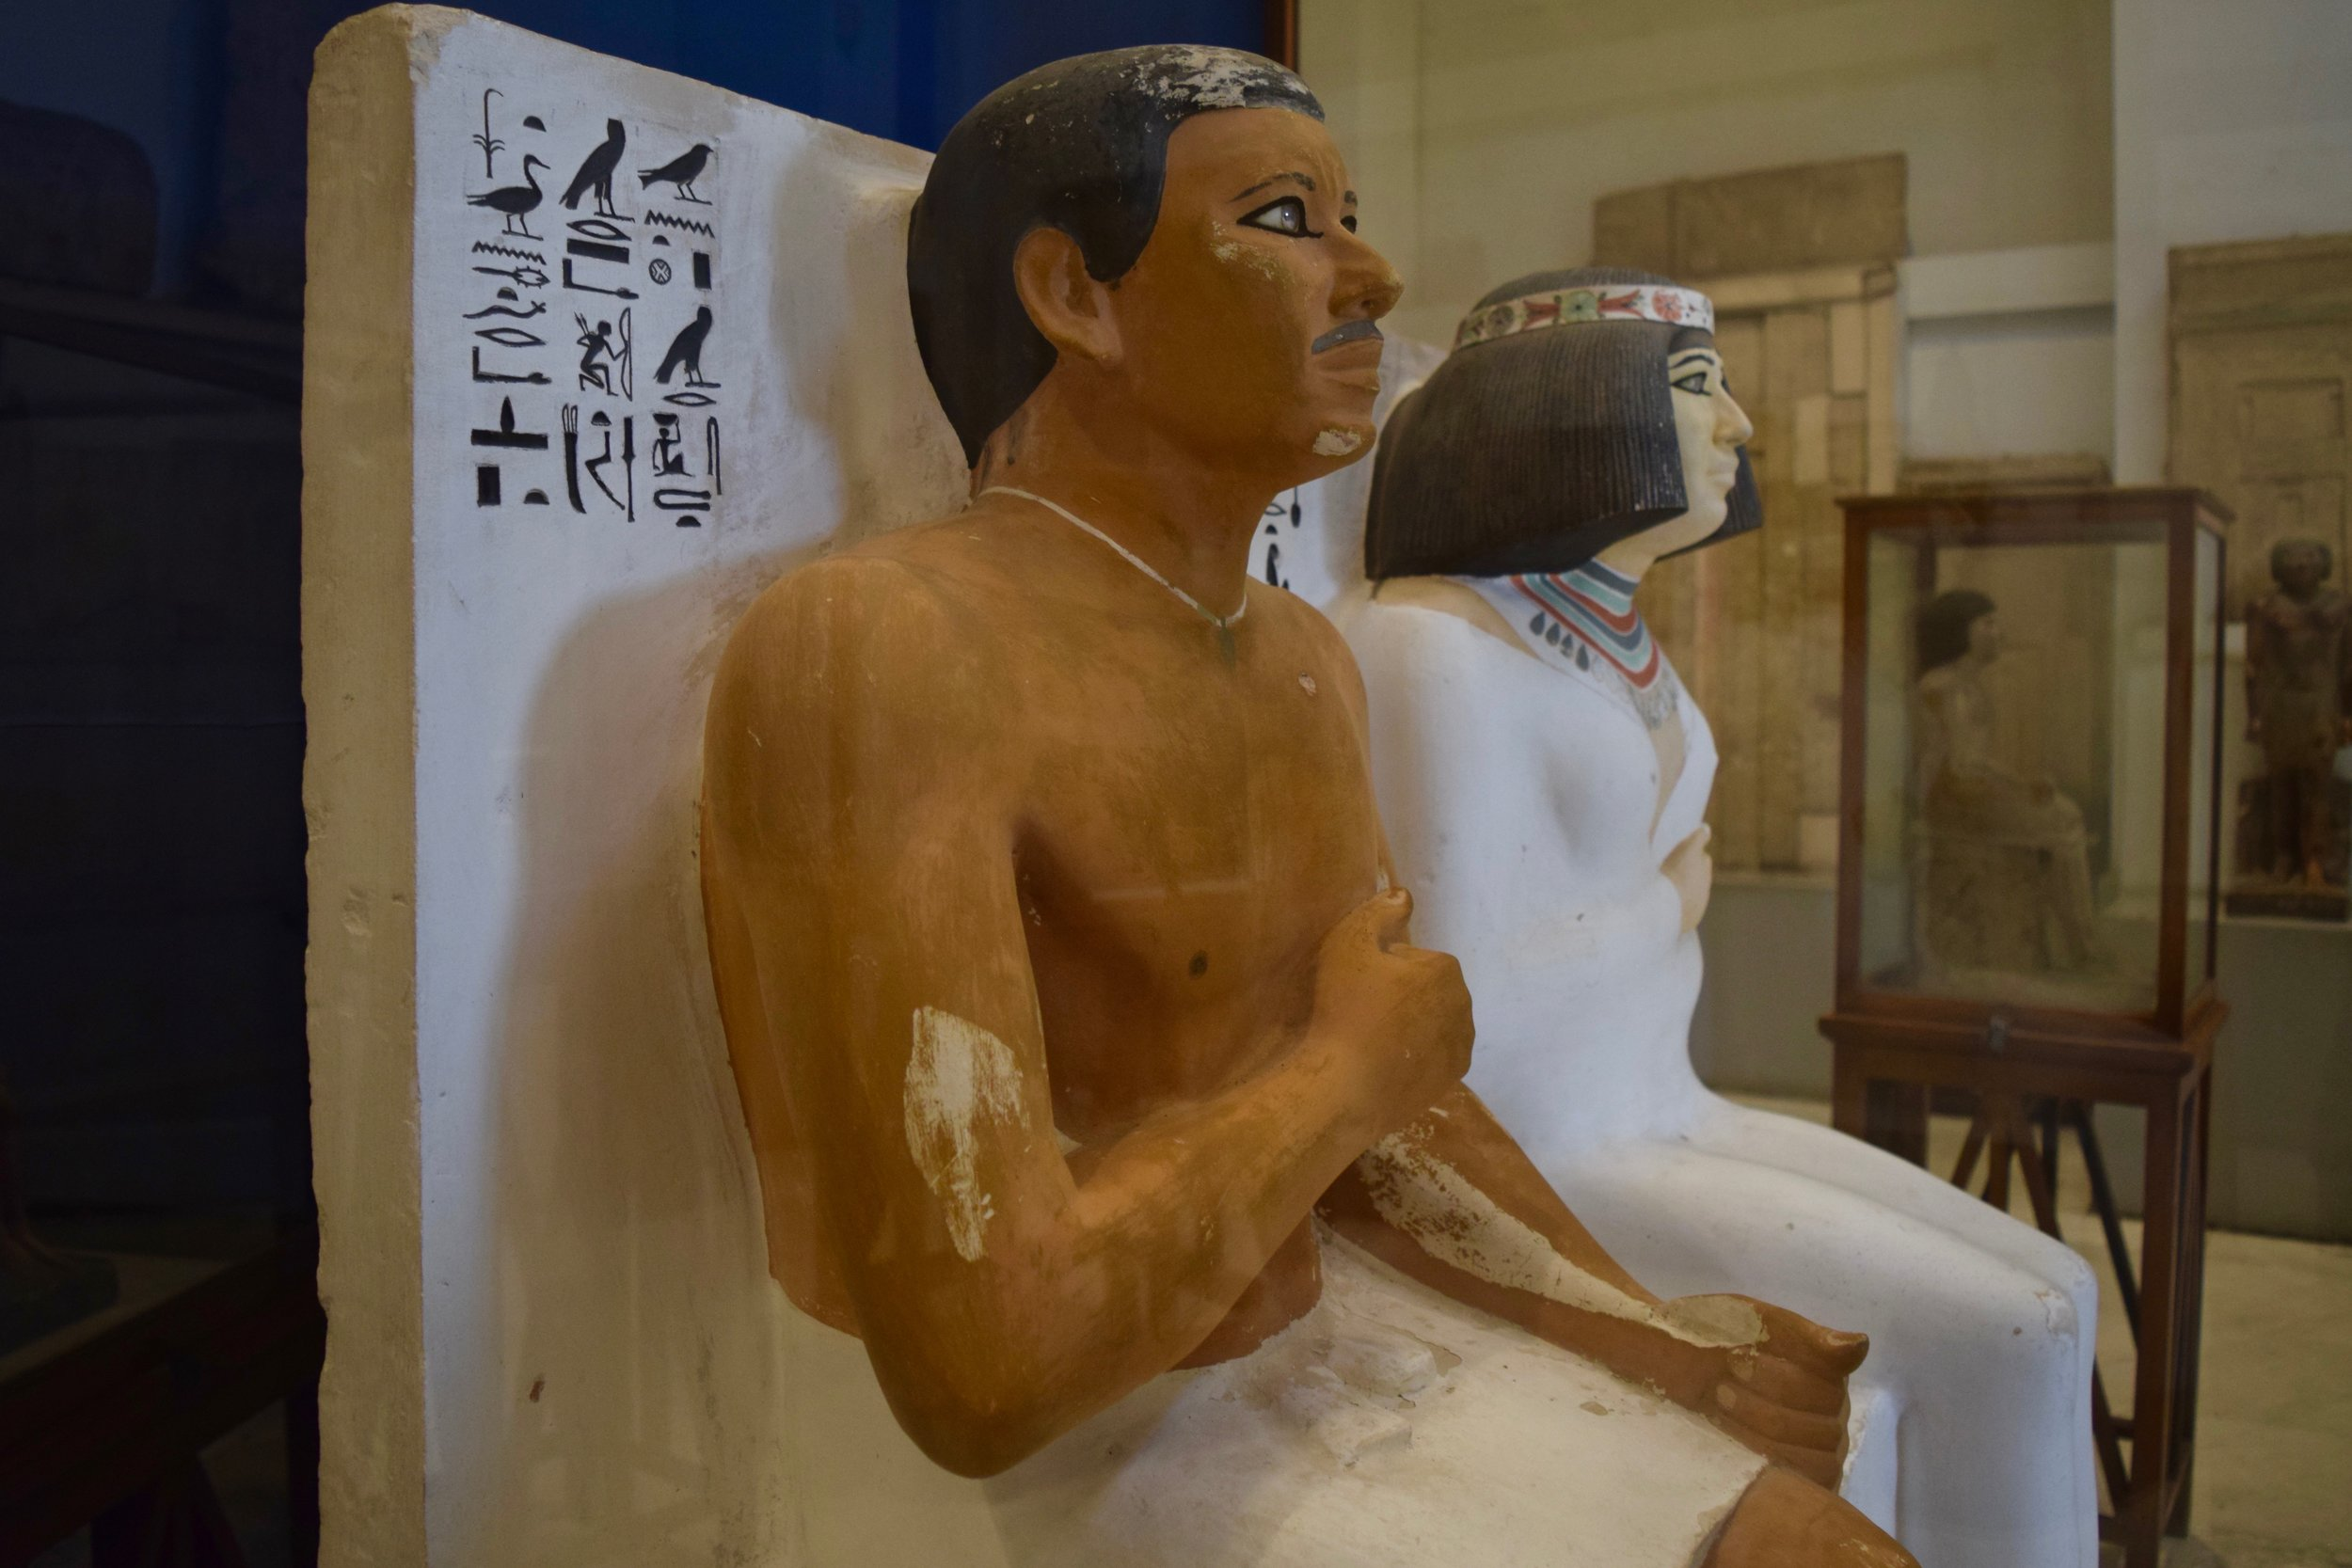 Rahotep and his wife Nofret